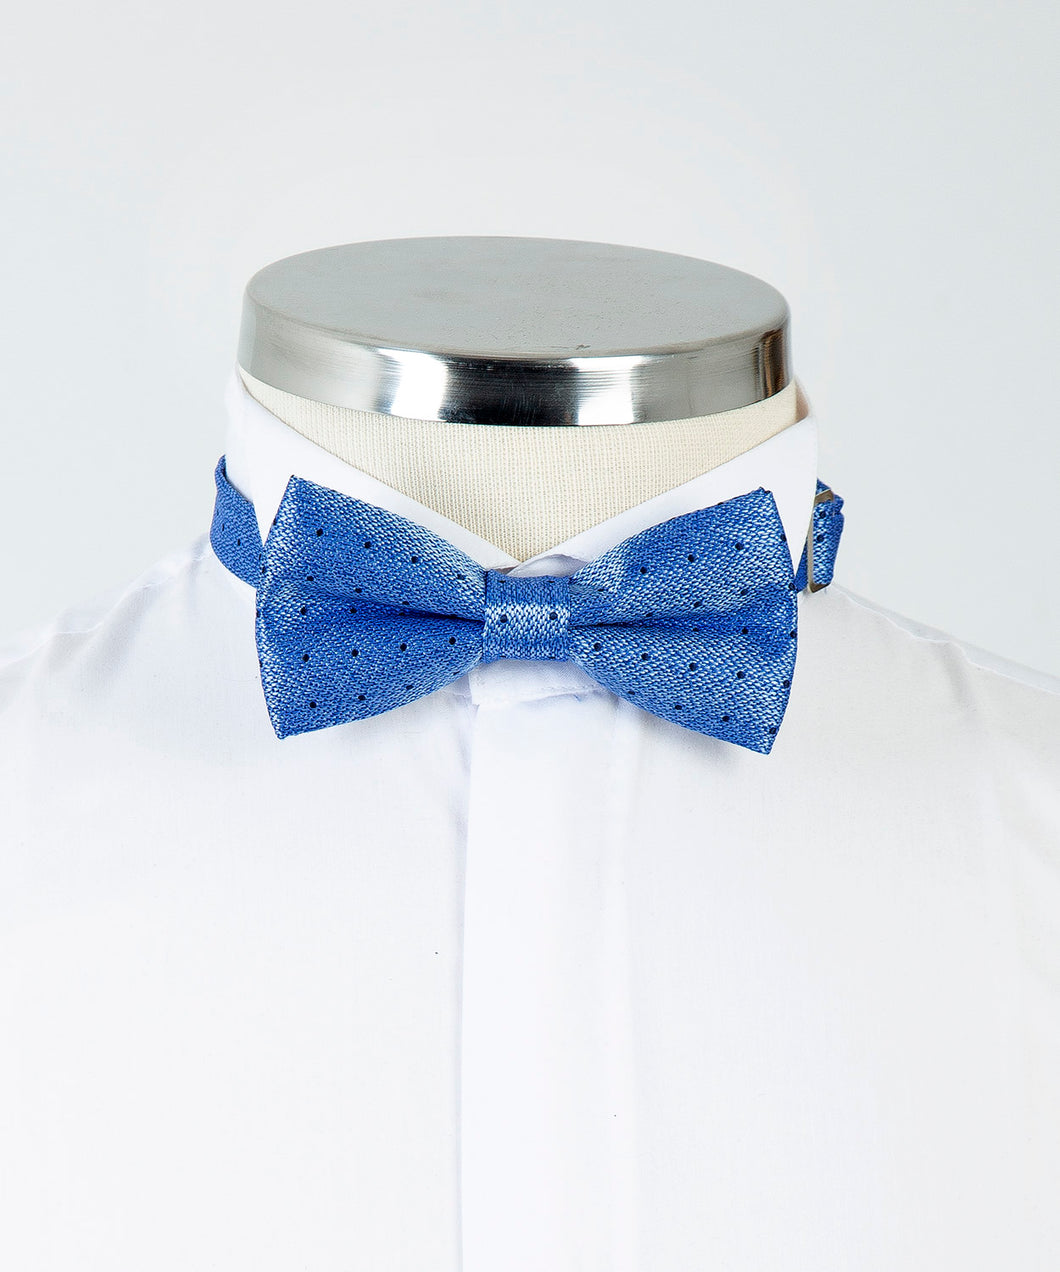 Patterned Bow Tie - Blue